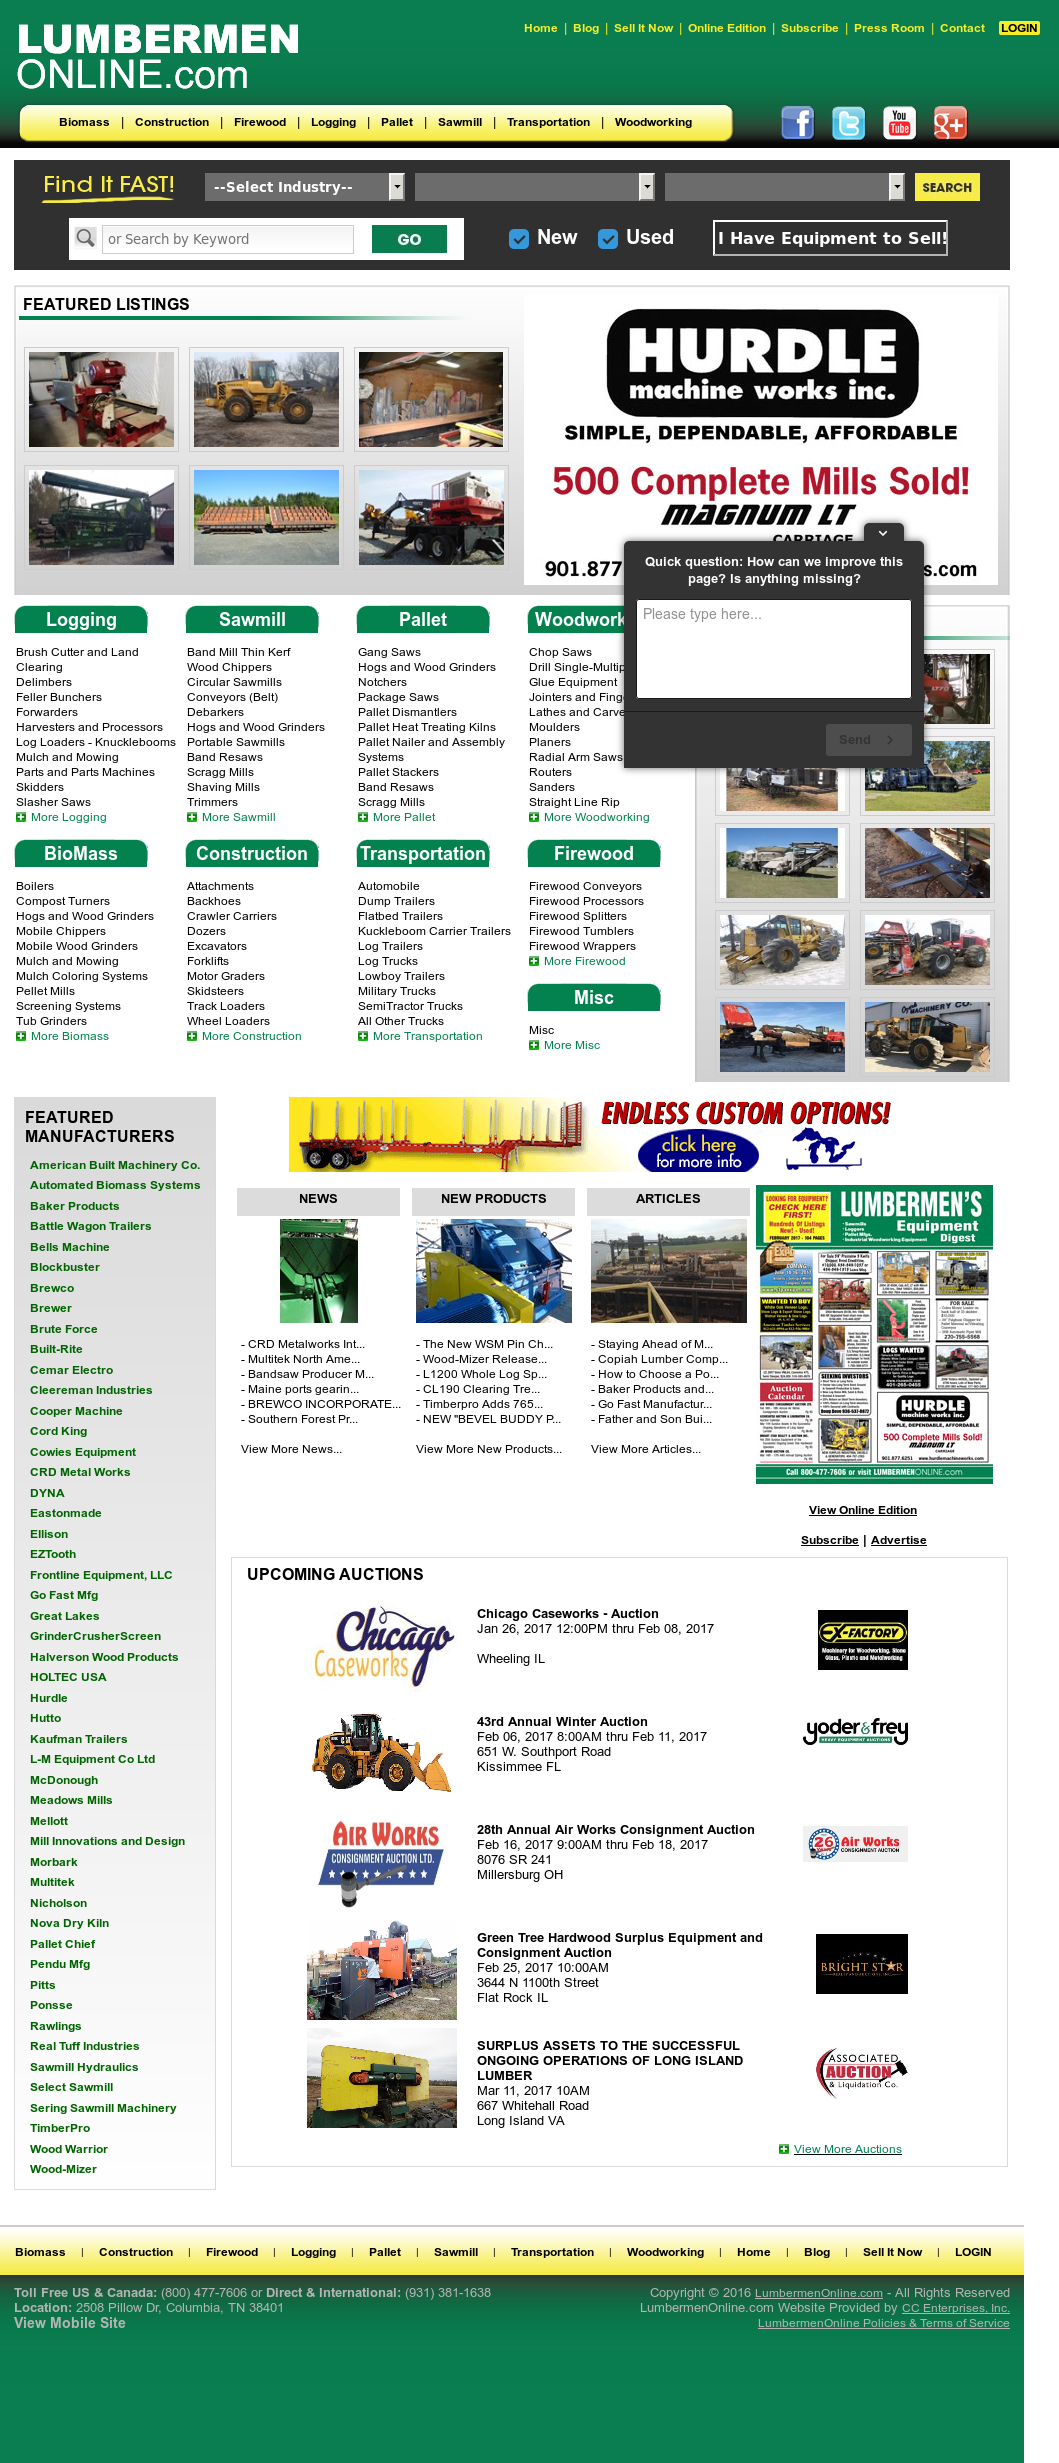 Lumbermen Online Competitors, Revenue and Employees - Owler Company